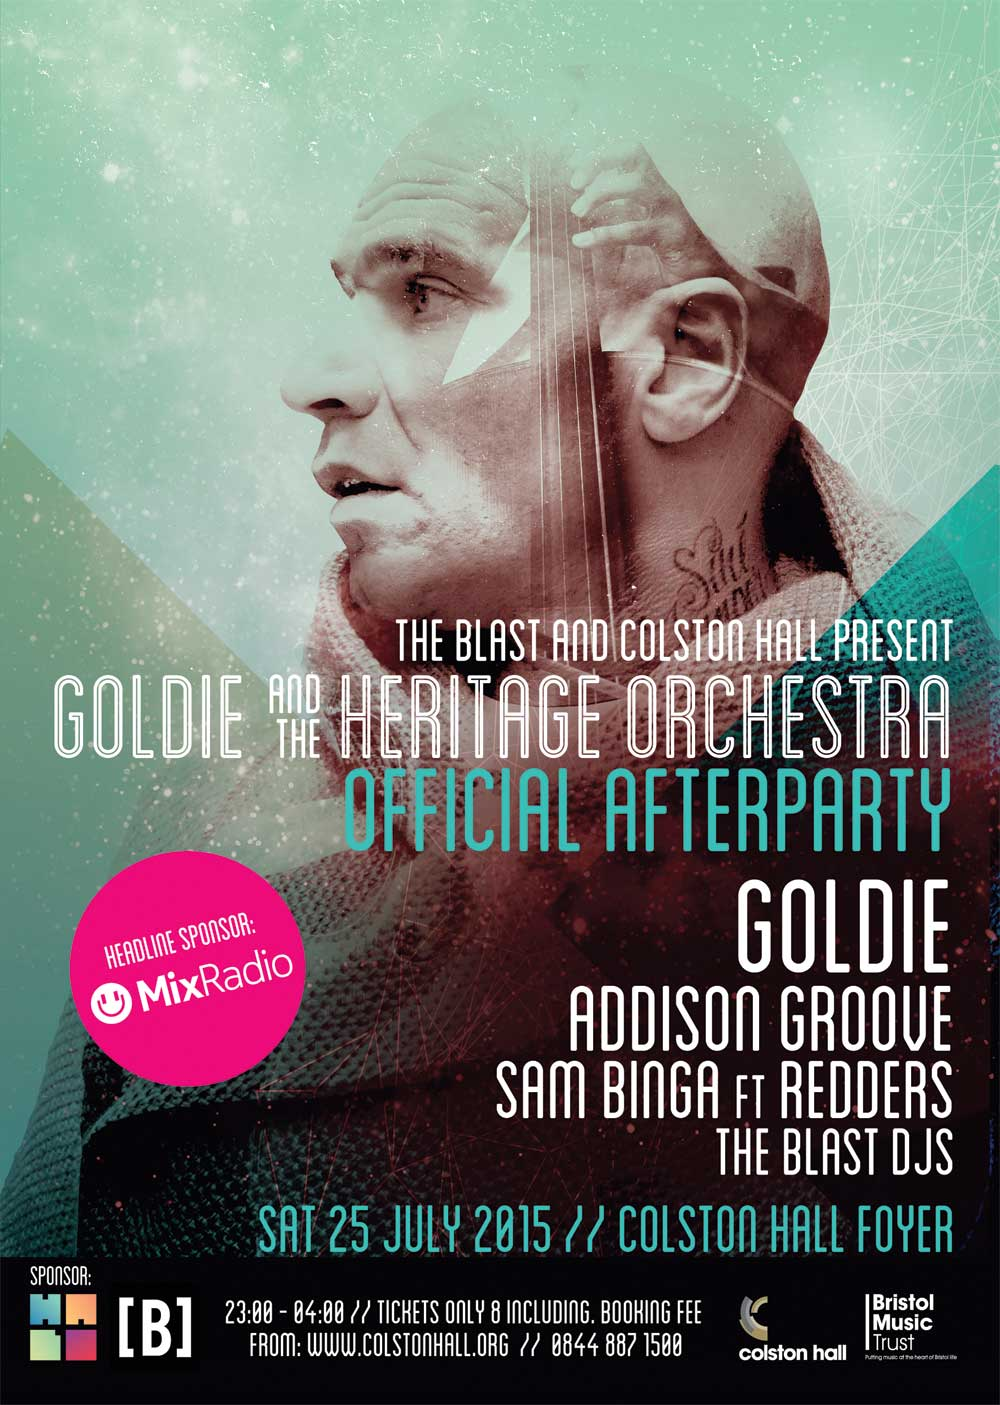 Goldie the heritage orchestra official afterparty for The heritage orchestra